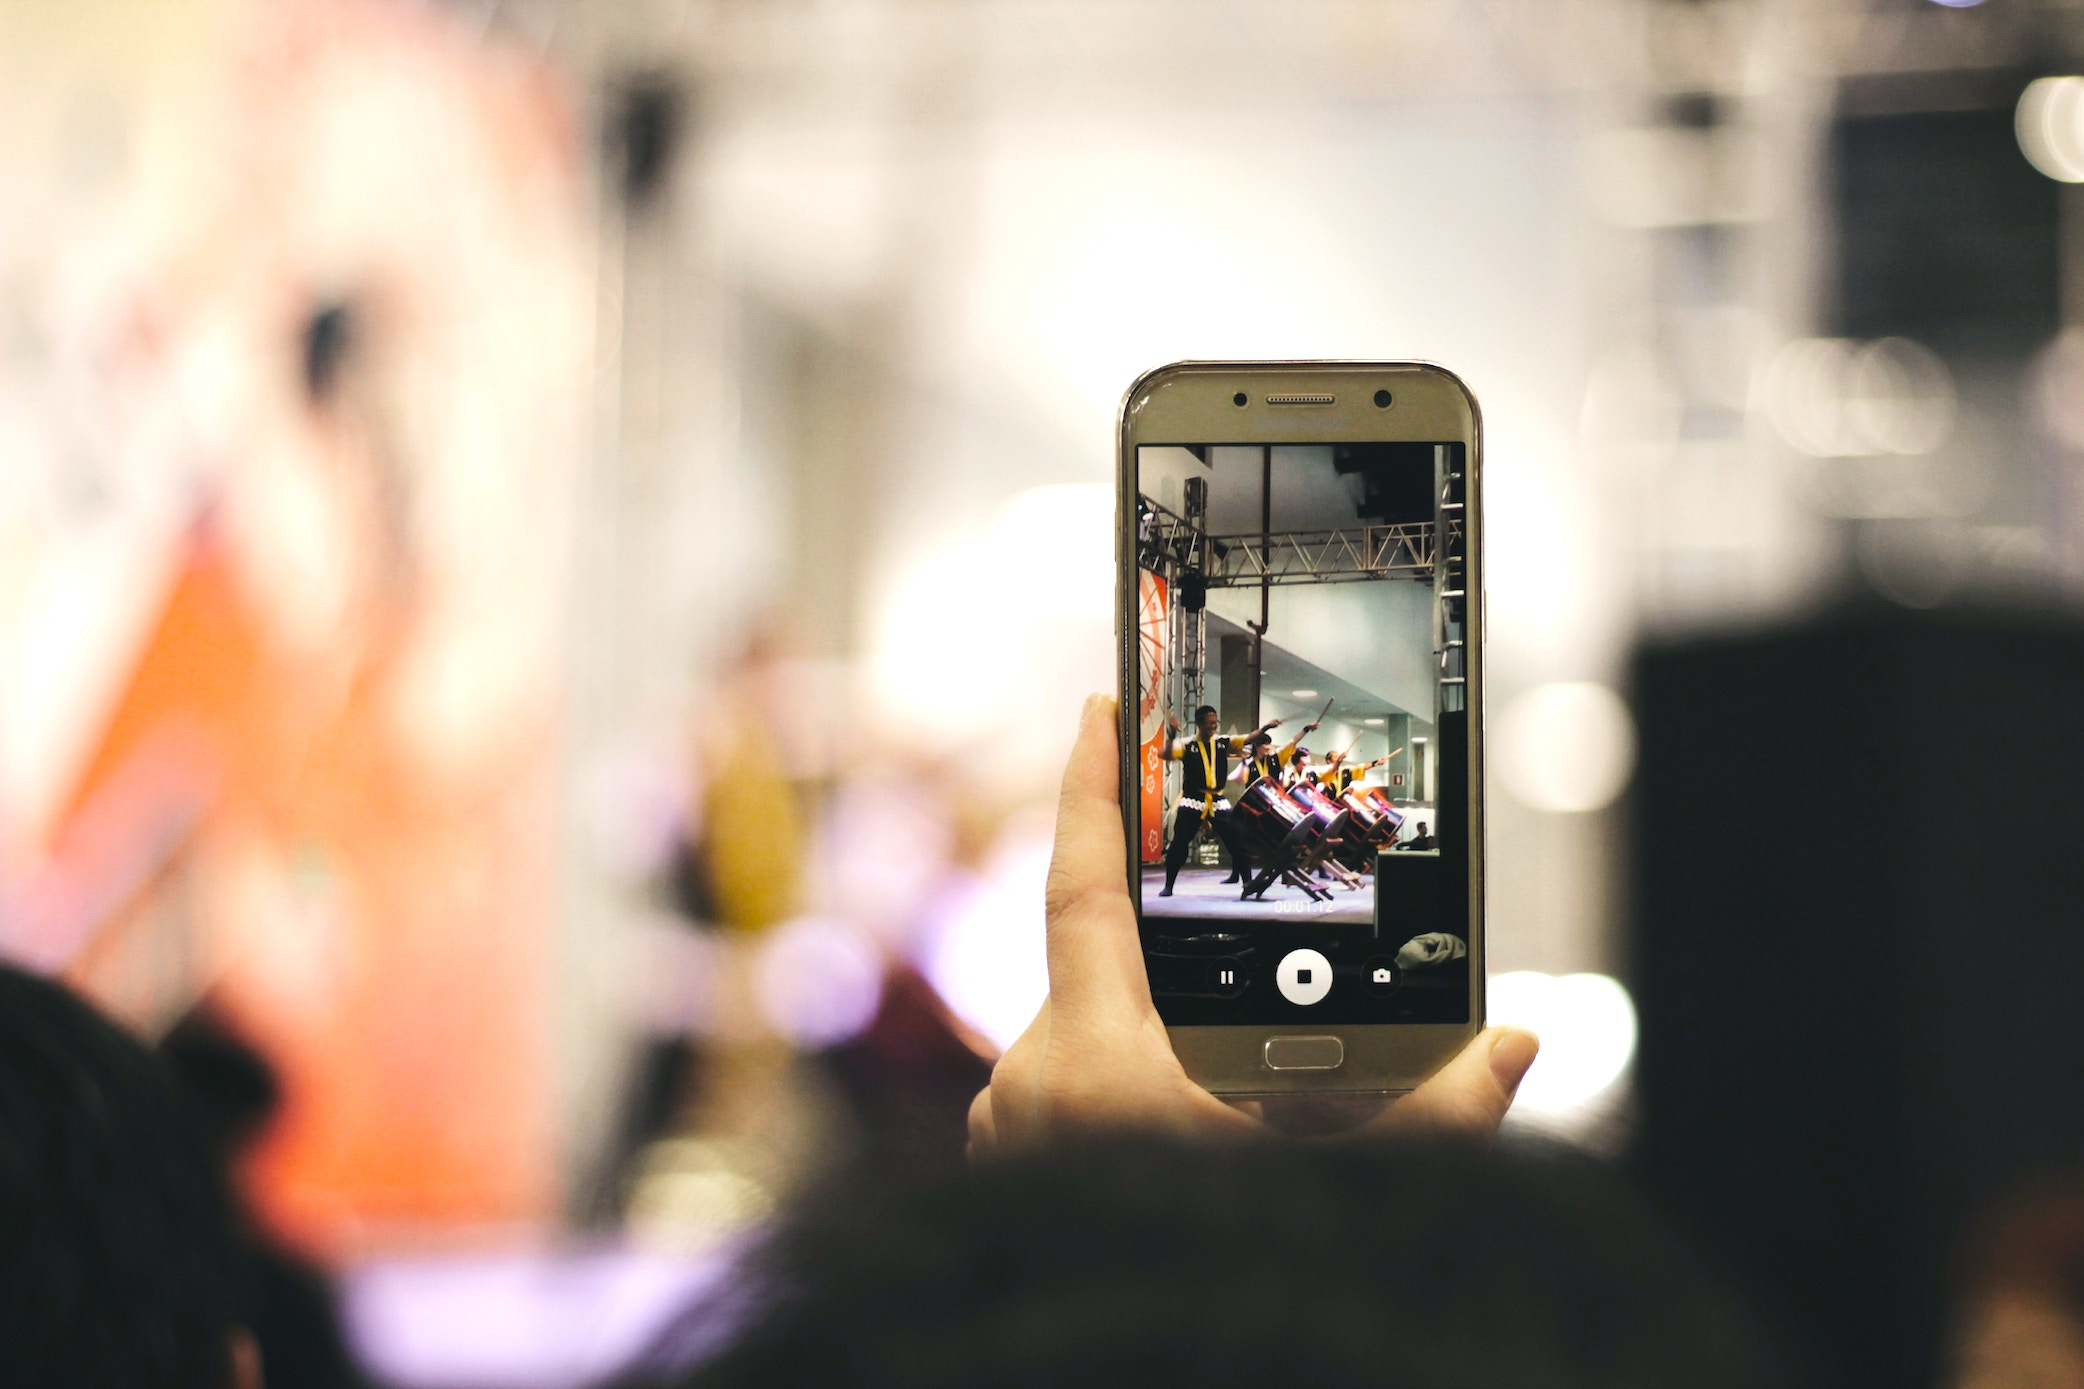 Consumers in Asia Trends in 2018 - Share Worthy Moments